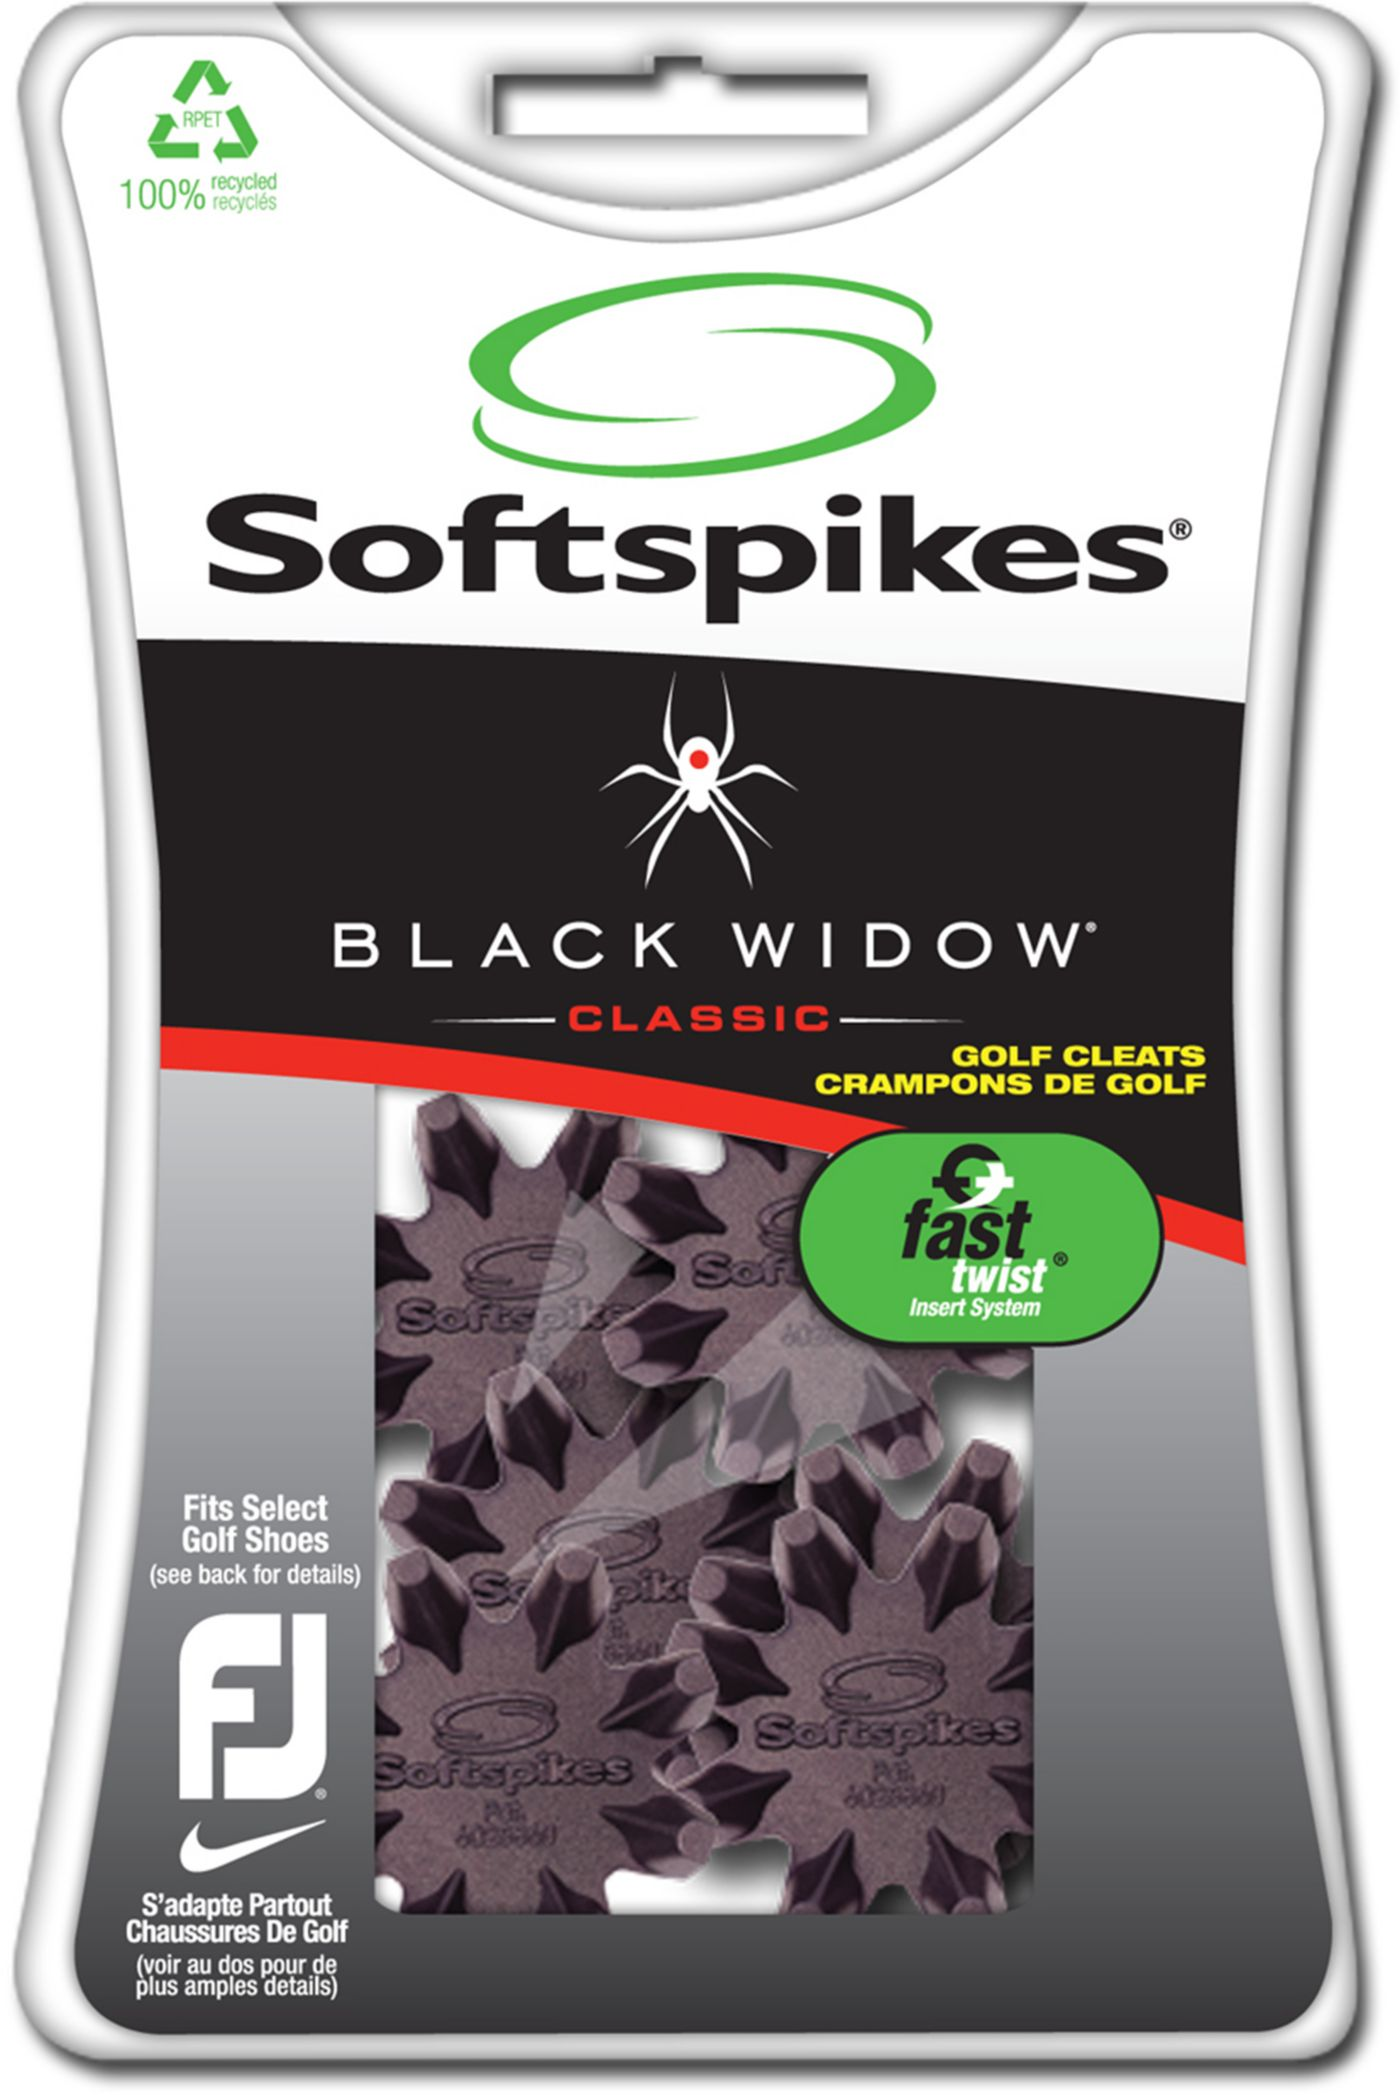 Softspikes Black Widow Fast Twist Golf Spikes - 16 Pack